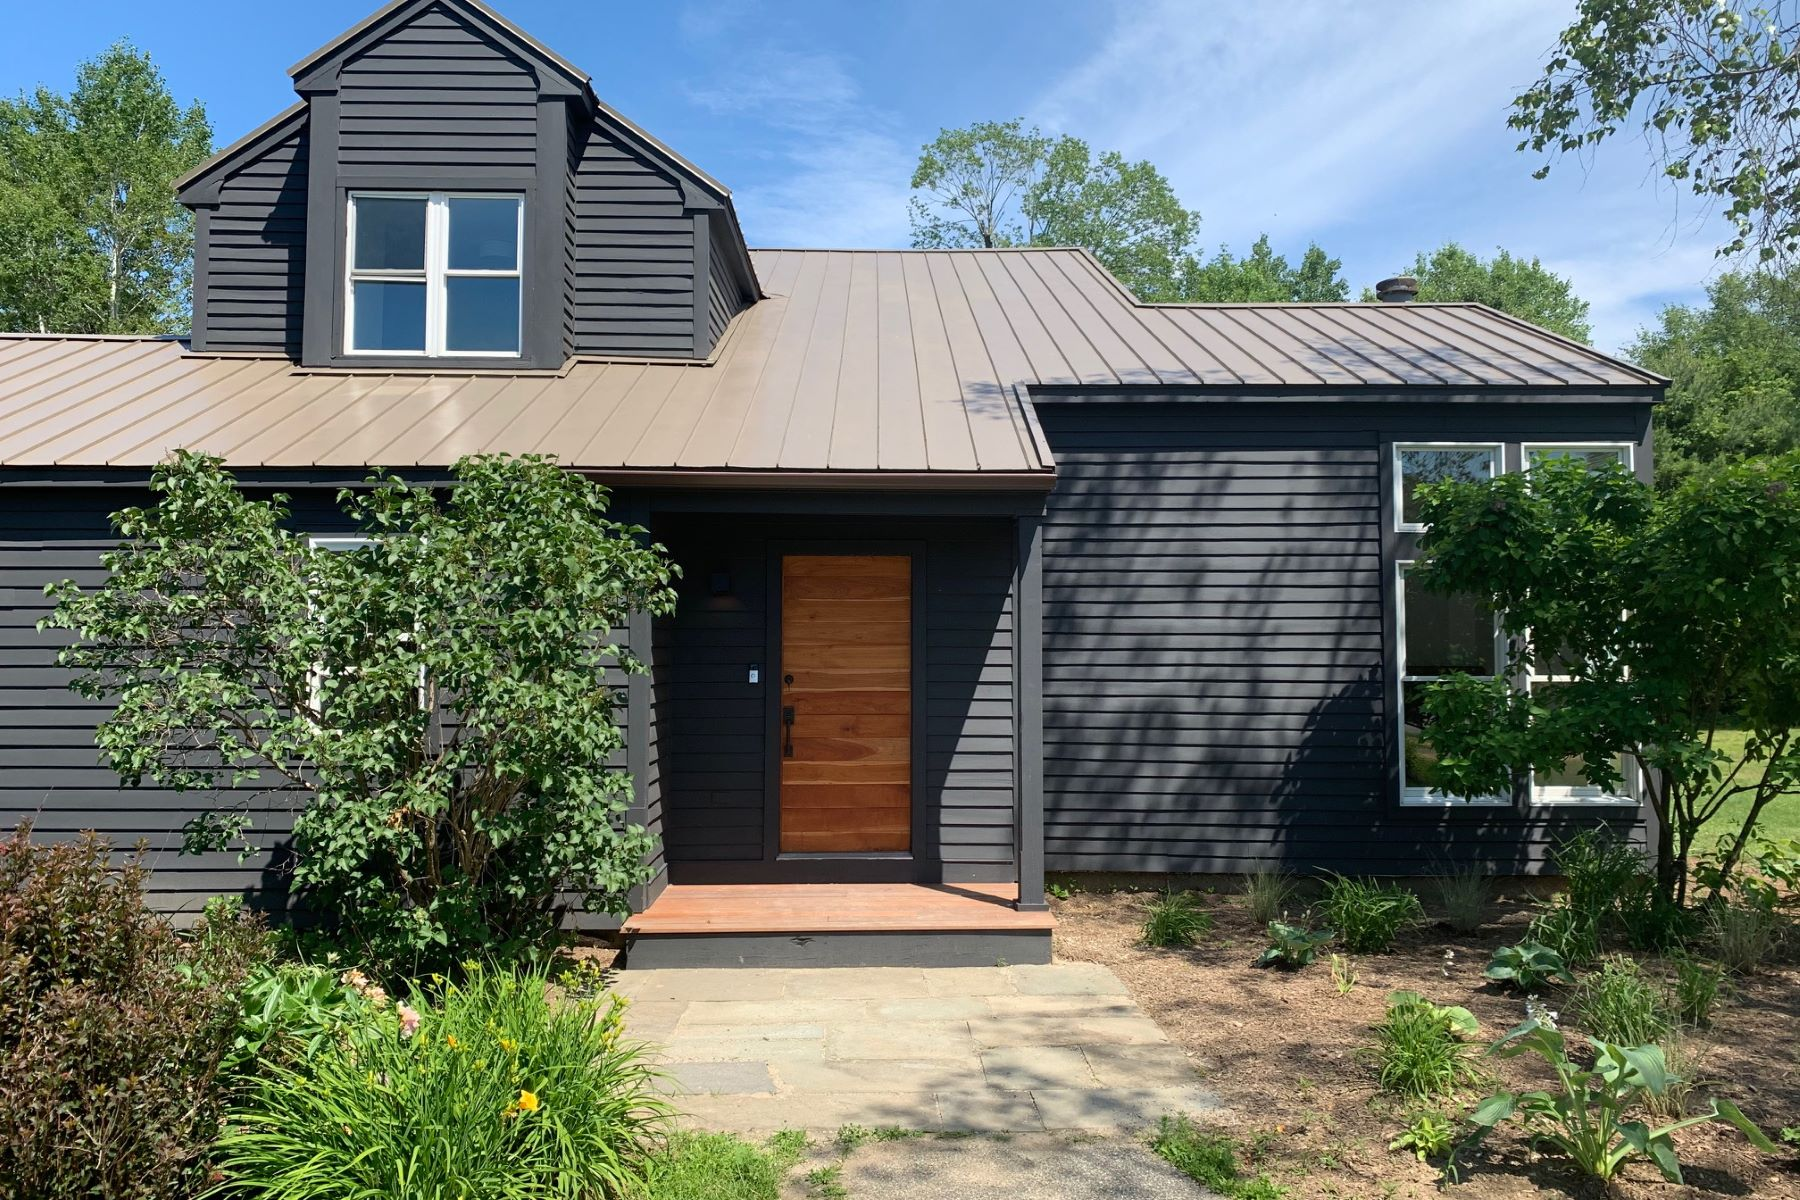 Single Family Homes for Active at Contemporary Renovated Home with Views 1 White Birch Rd Great Barrington, Massachusetts 01230 United States